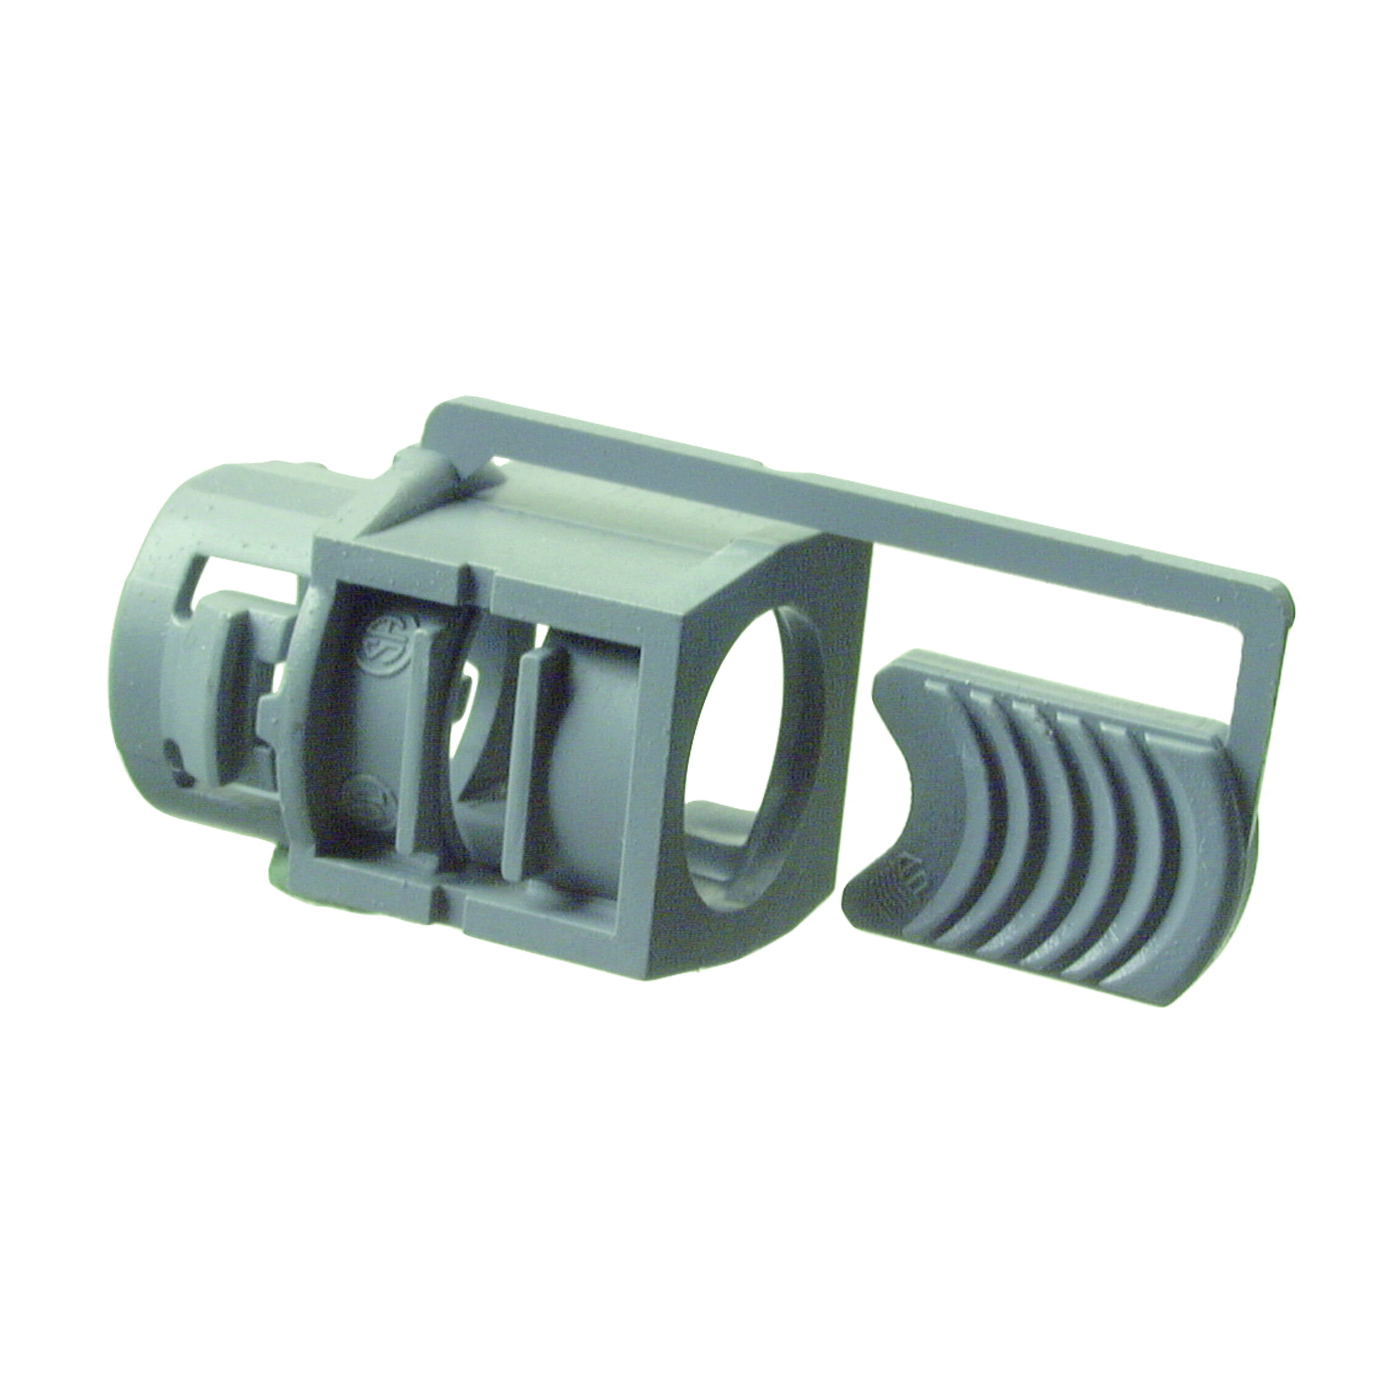 Picture of Halex 27515 Cable Connector, Polypropylene, Gray